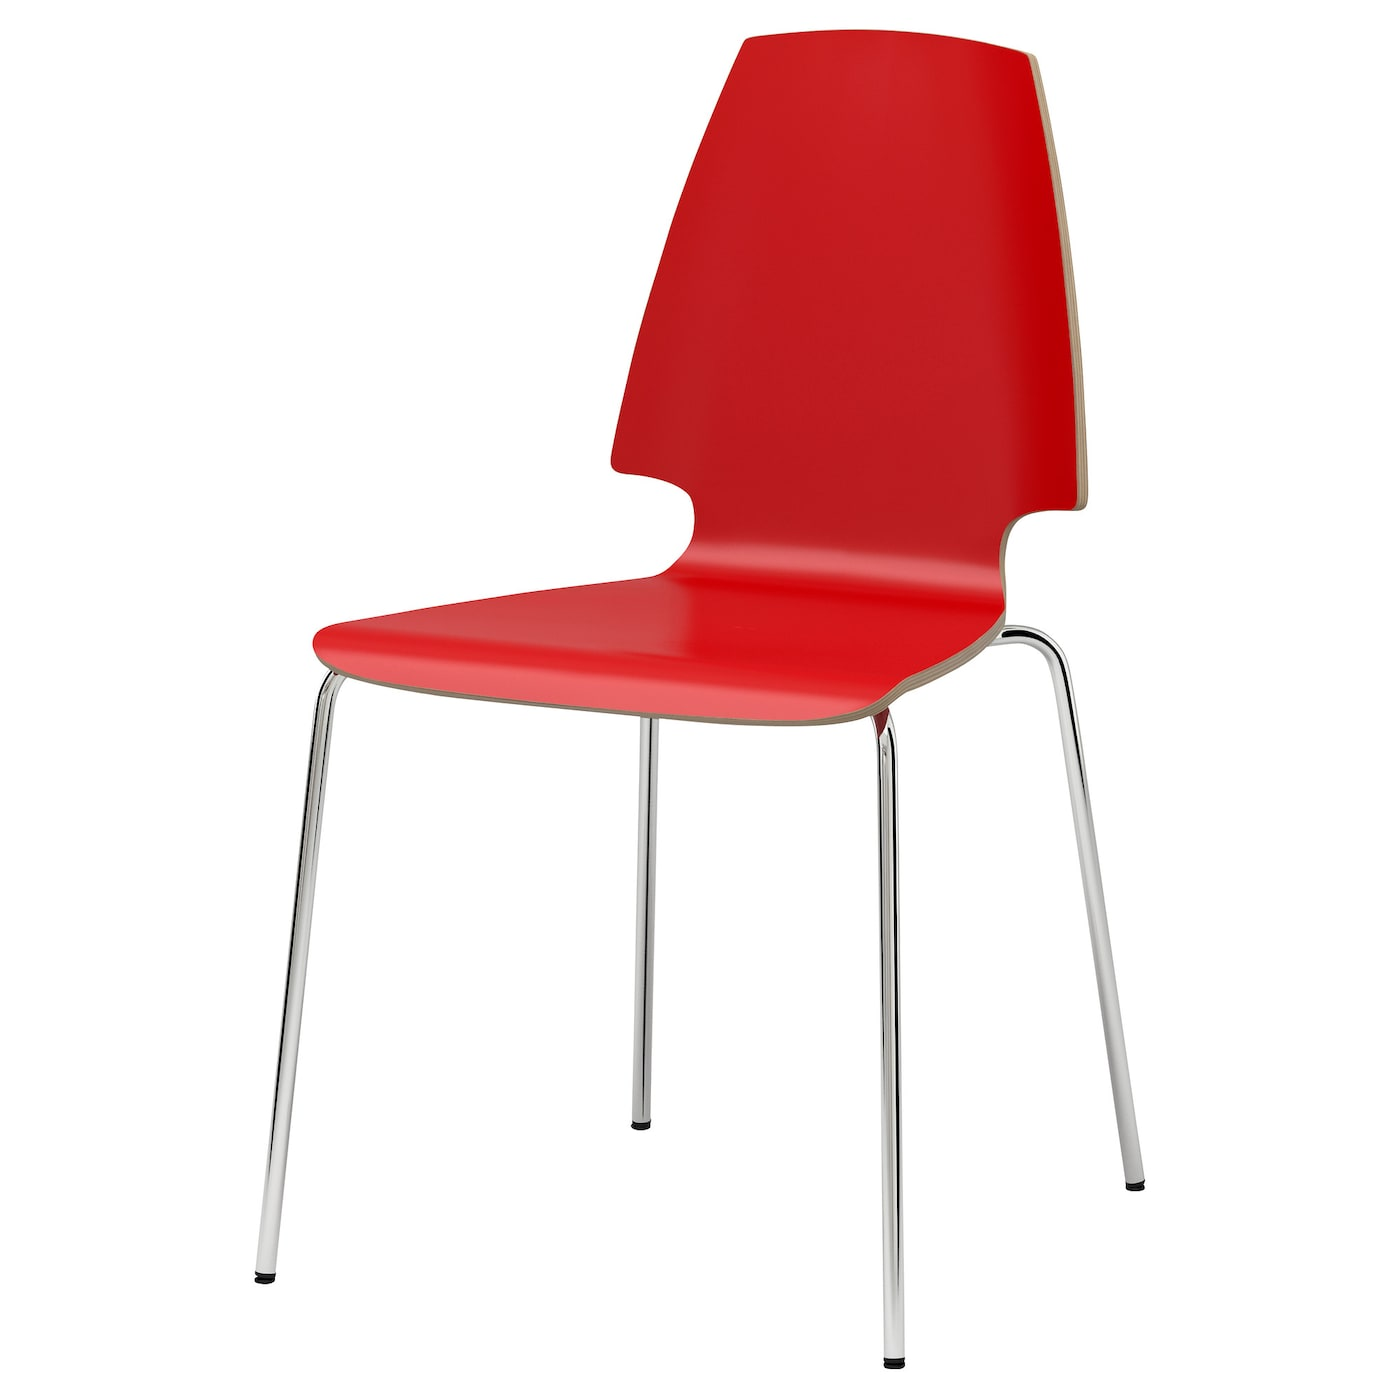 VILMAR Chair Red chrome plated IKEA